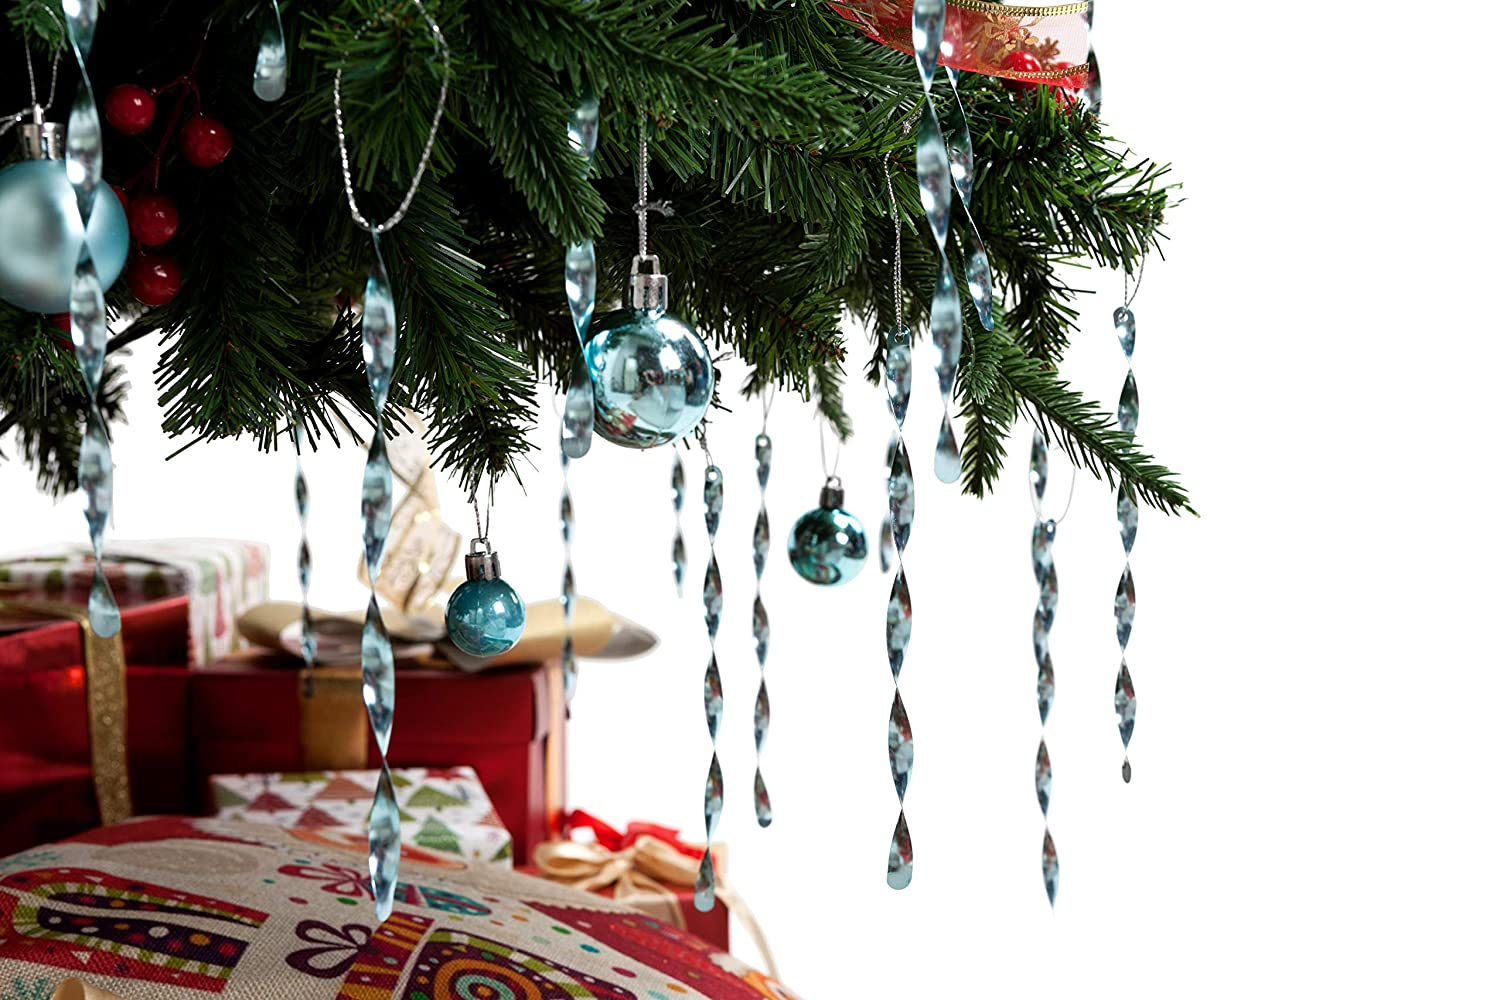 AMS Christmas Tree Aluminum Spiral Strip Hangings - 7 24pcs ...